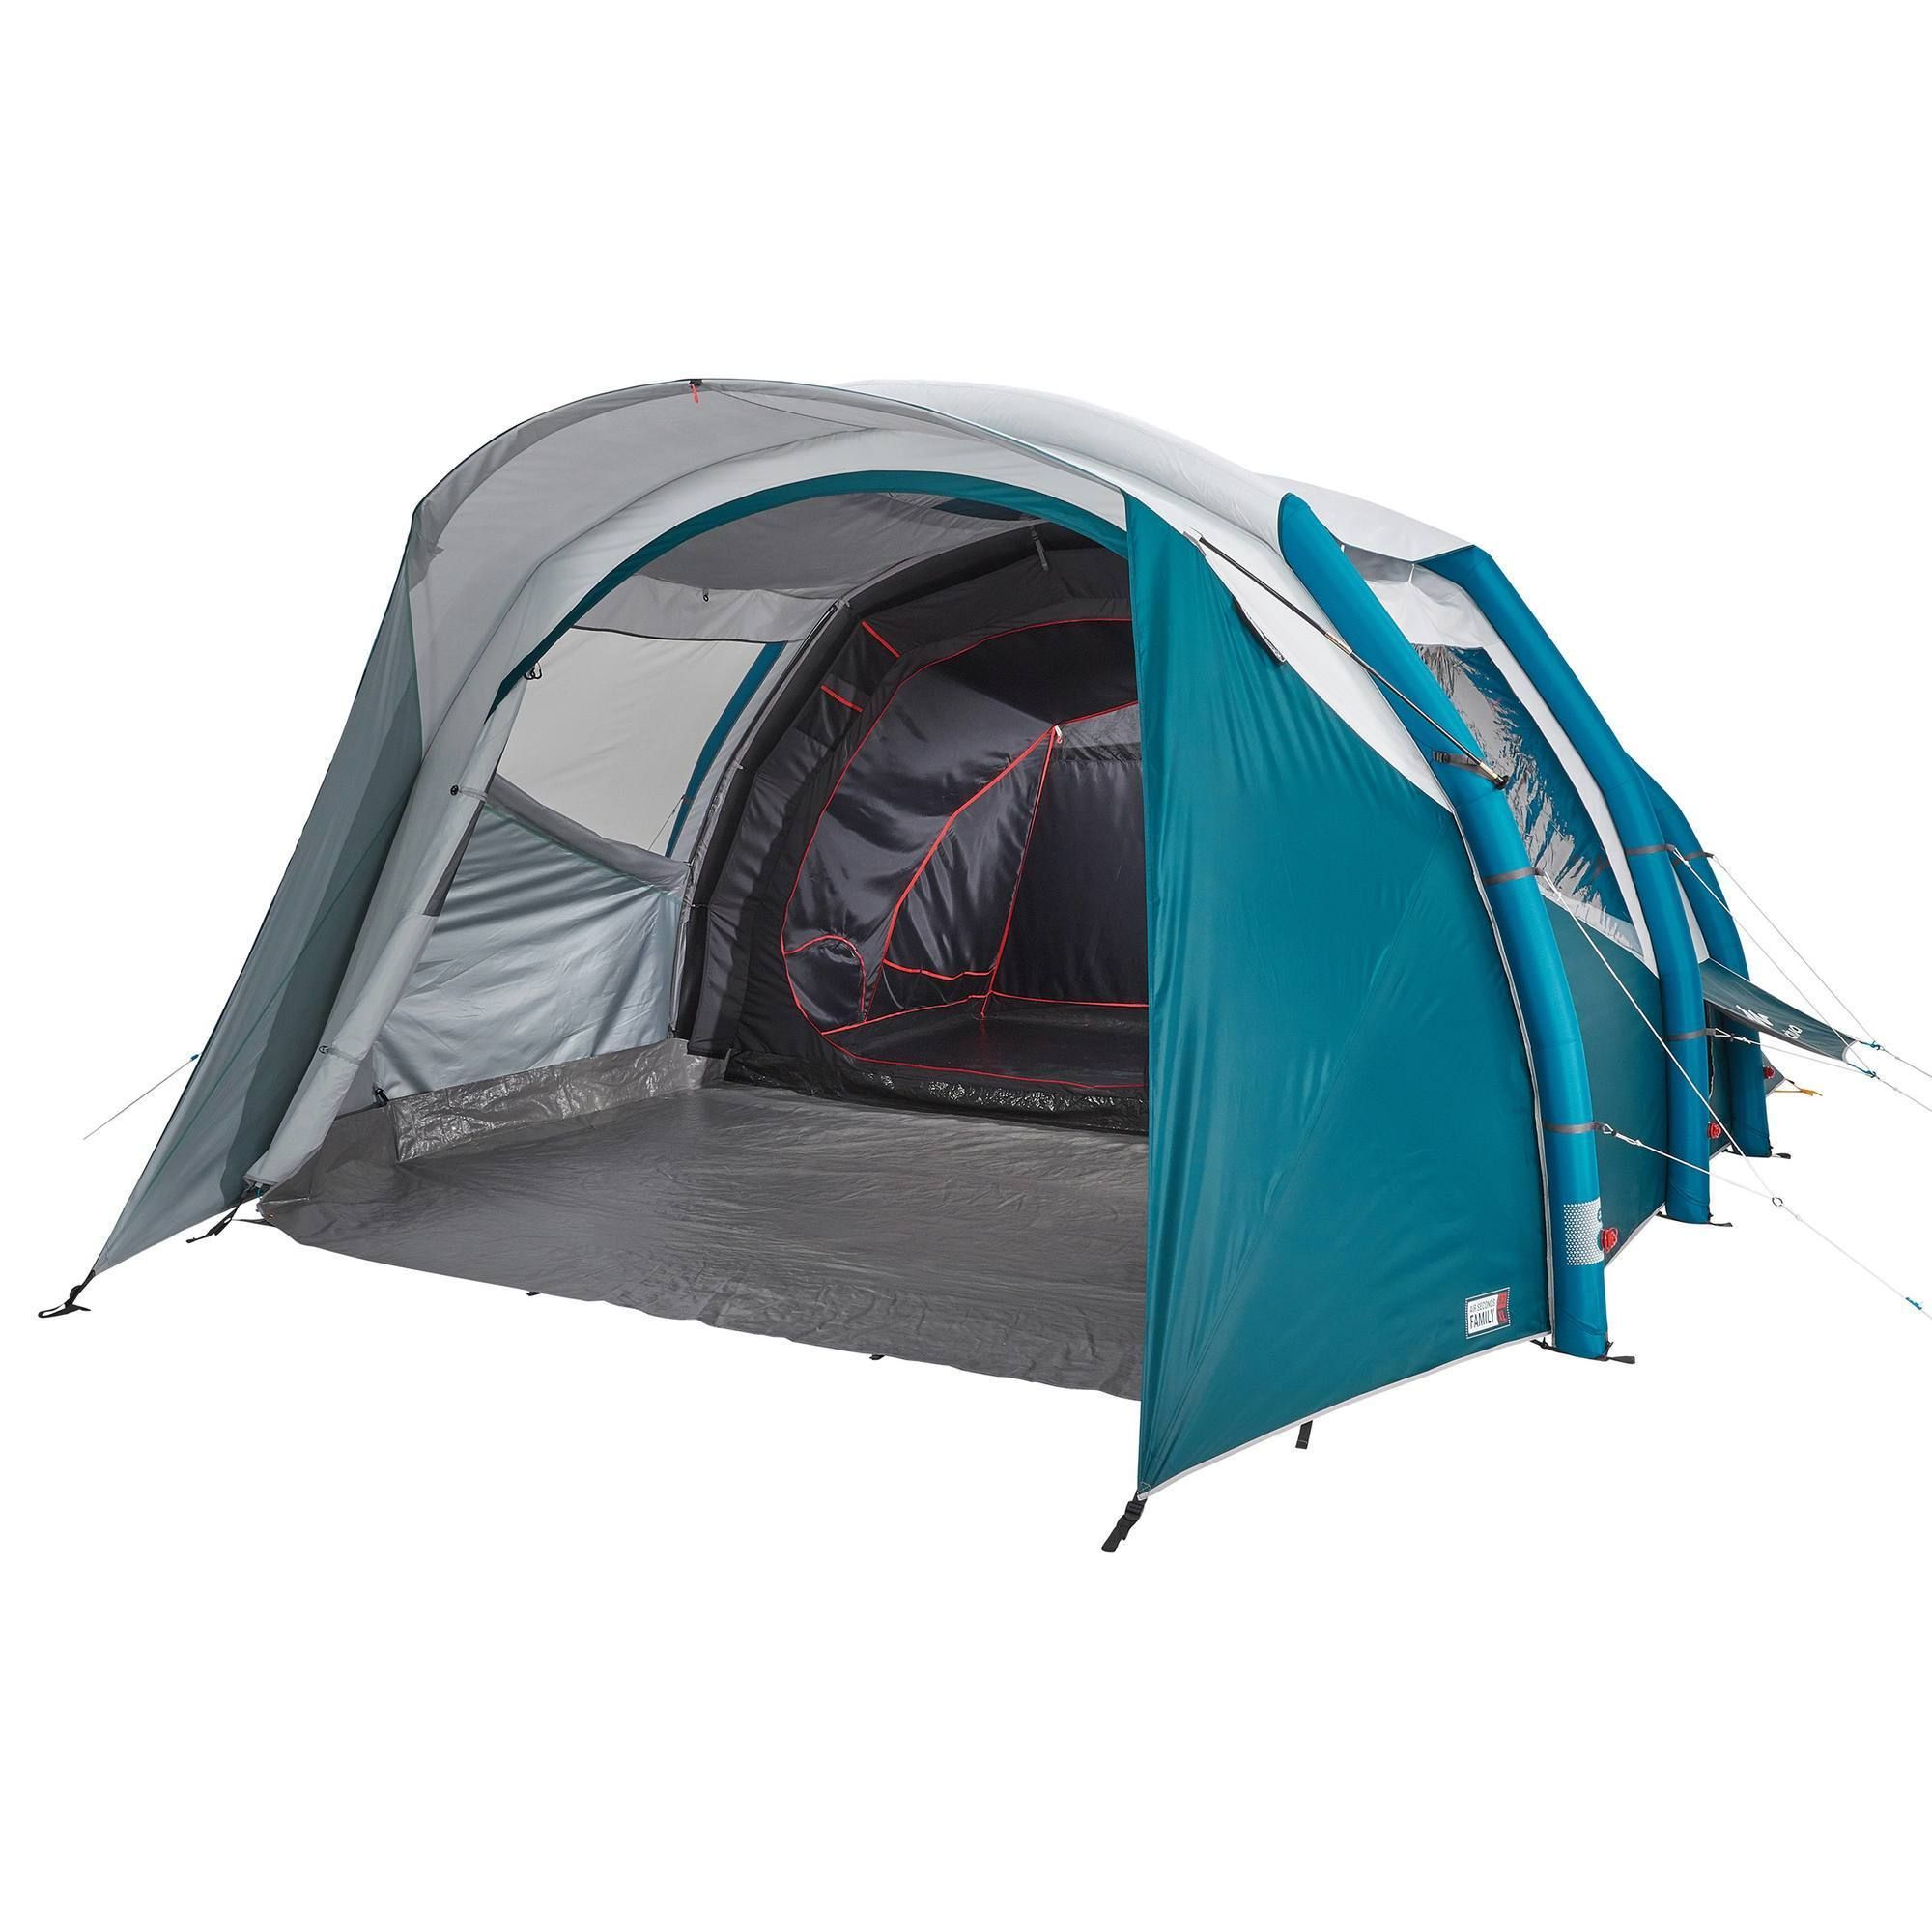 Quechua Air Seconds Fresh Inflatable Camping Tent 5 Person 2 Room In Black In 2021 Tent Family Tent Camping Tent Camping